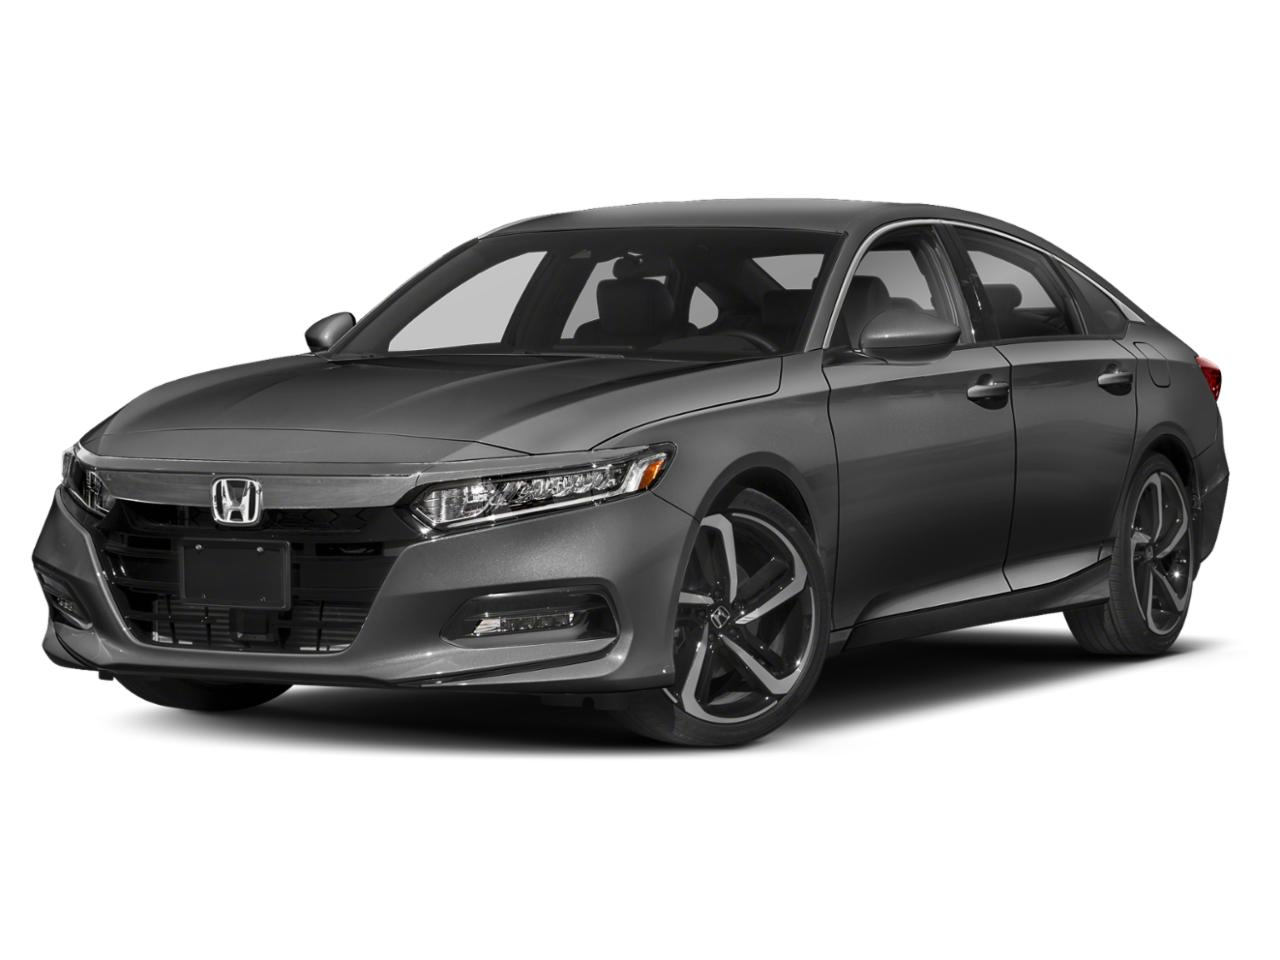 2018 Honda Accord Sedan Vehicle Photo in Midland, TX 79703